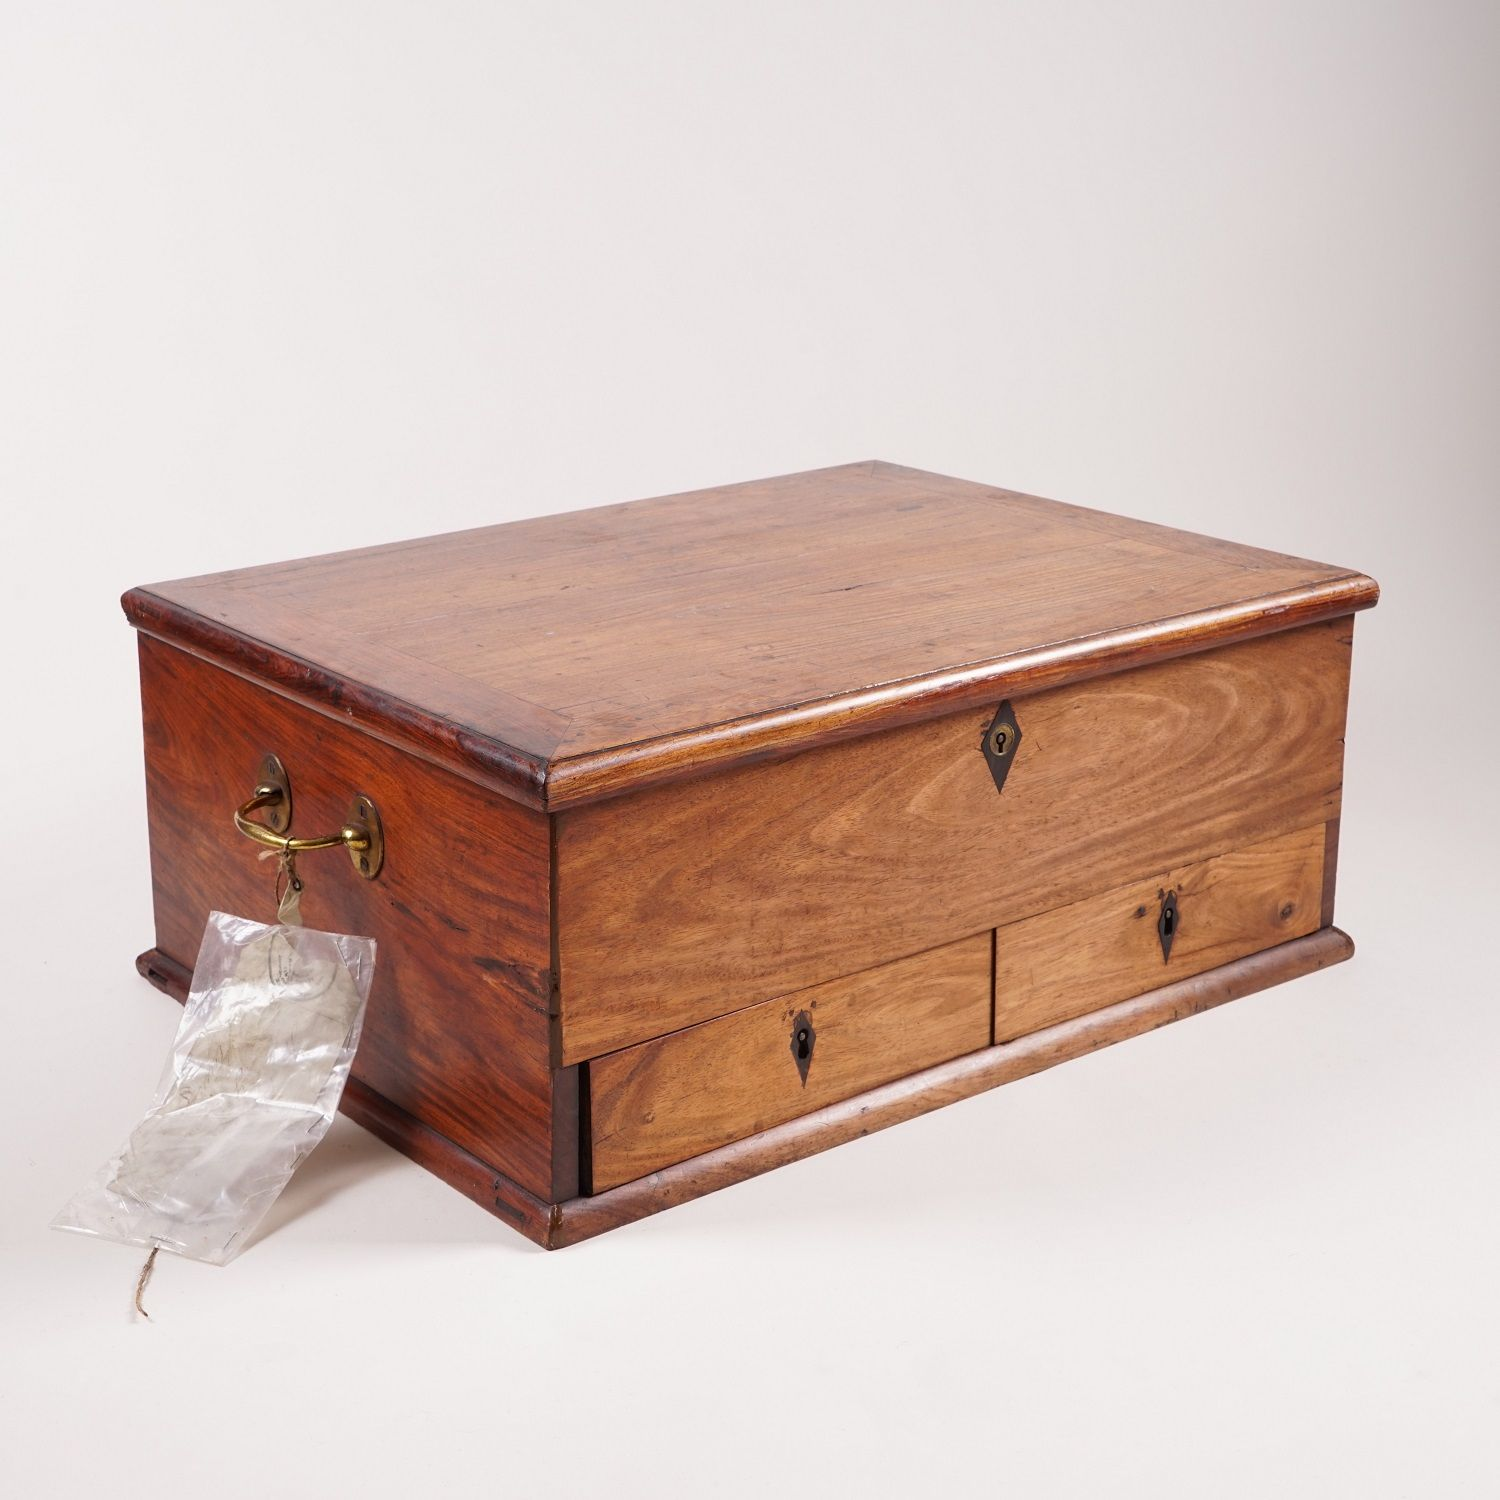 The Gladstone Document Box